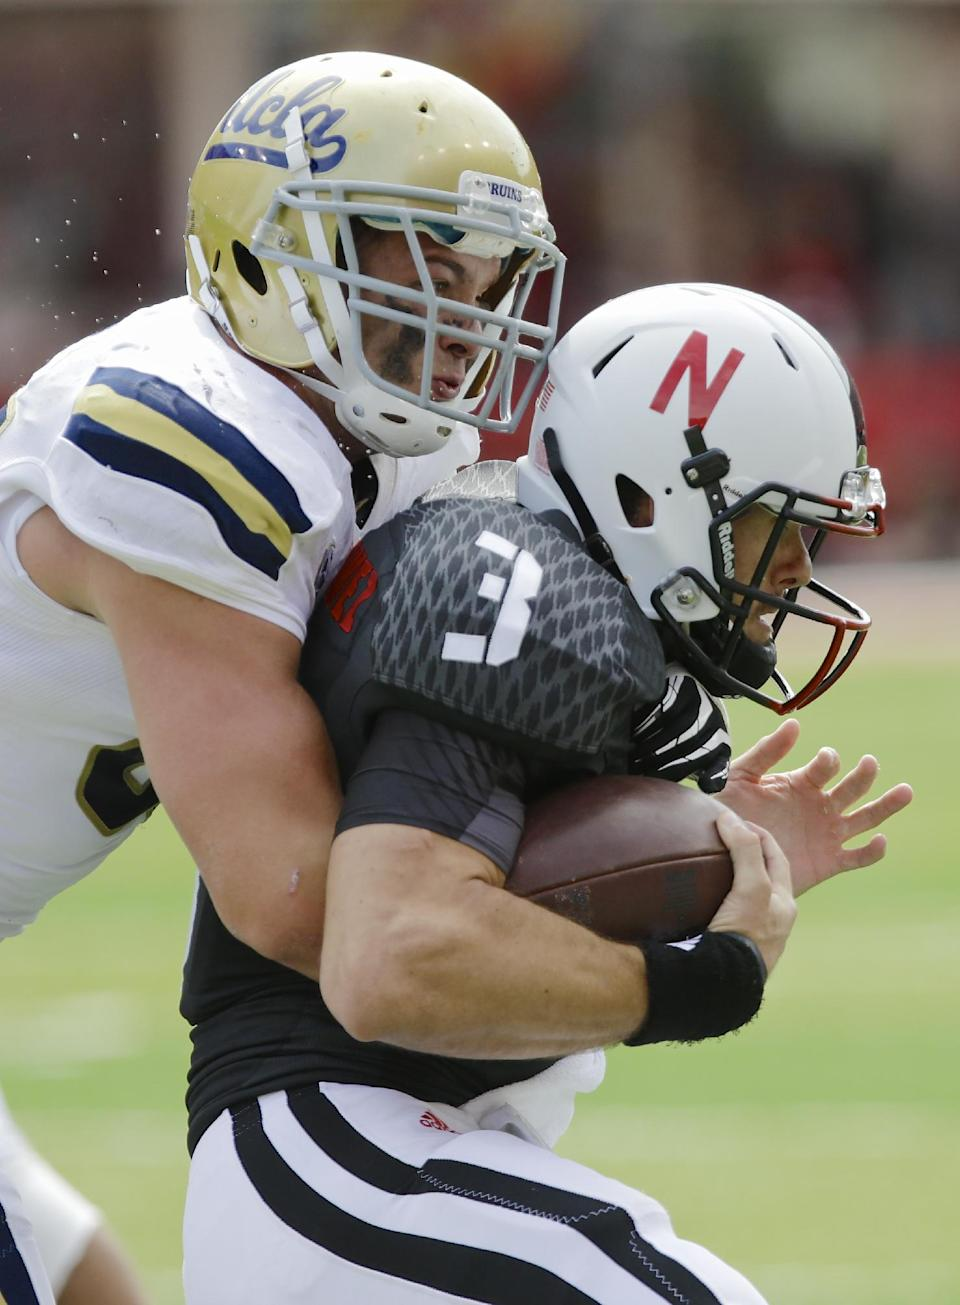 Pelini: Armstrong likely starting QB for Huskers